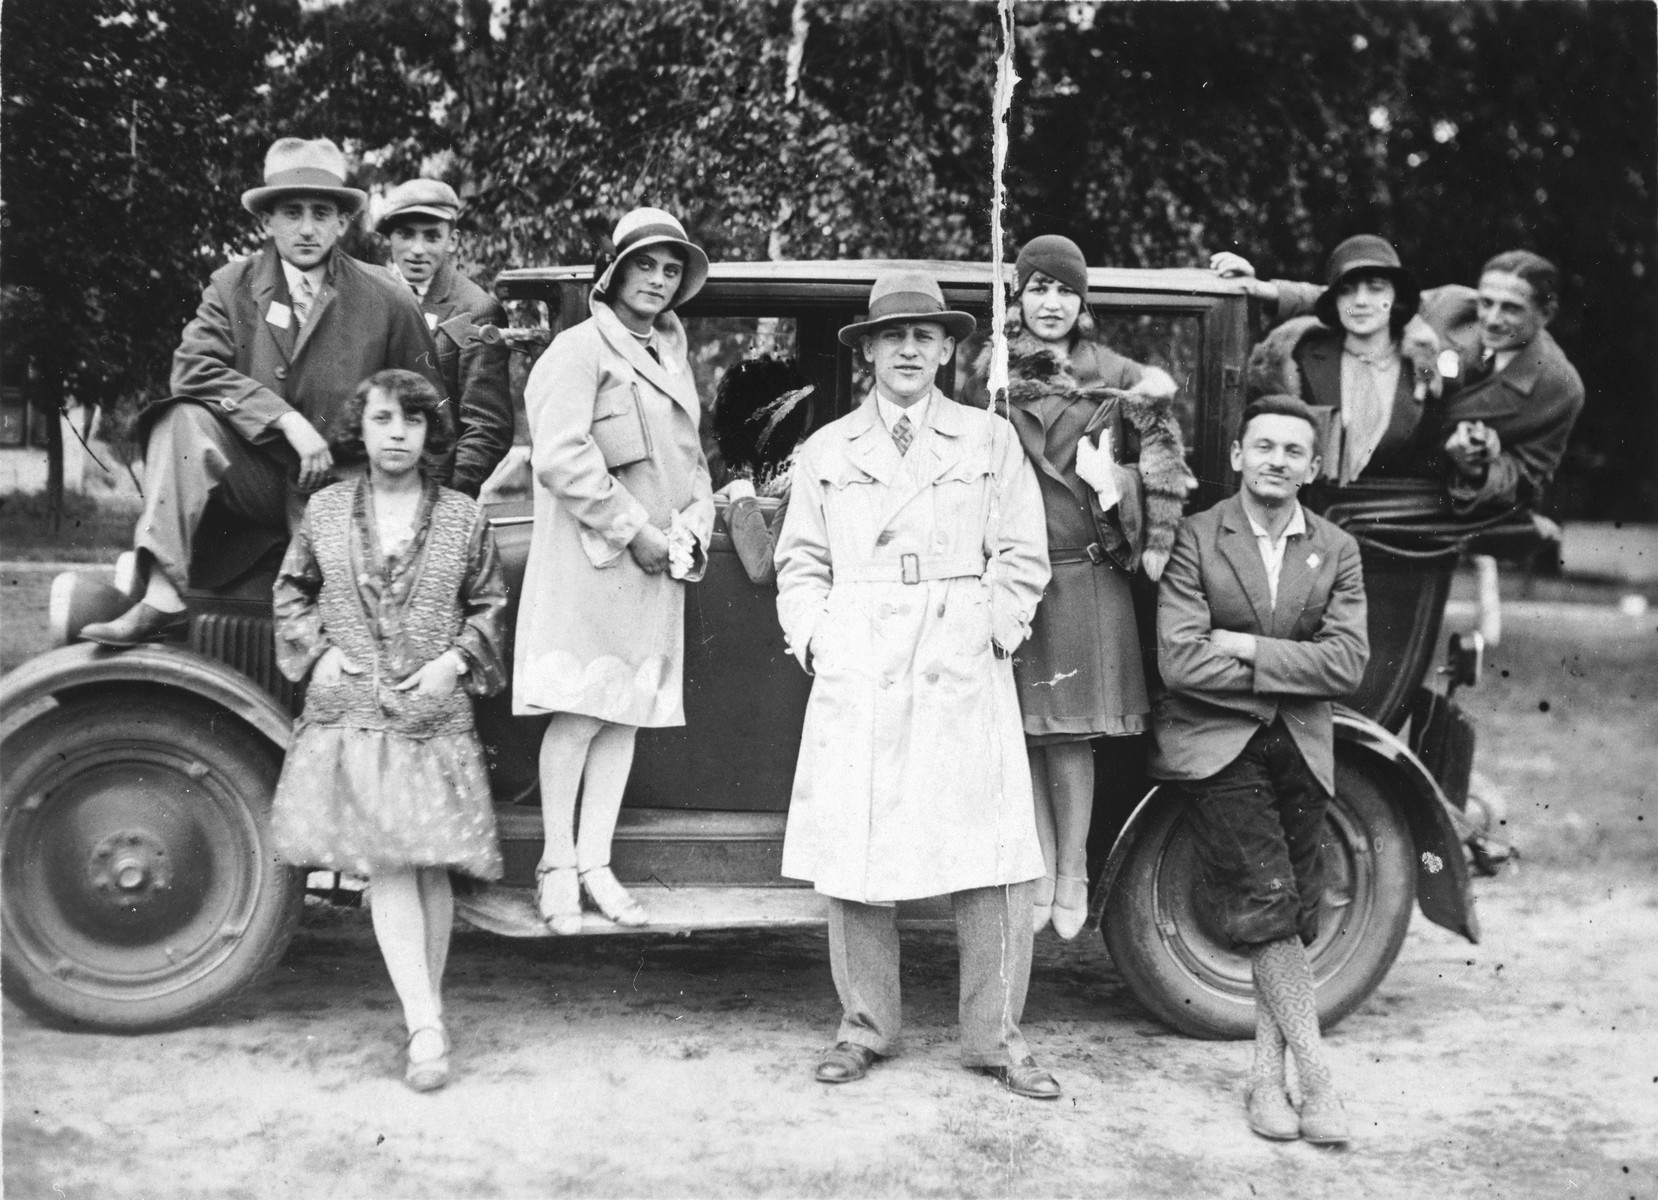 Frajda Fajerman (lower left) leans against an automobile surrounded by her factory coworkers.